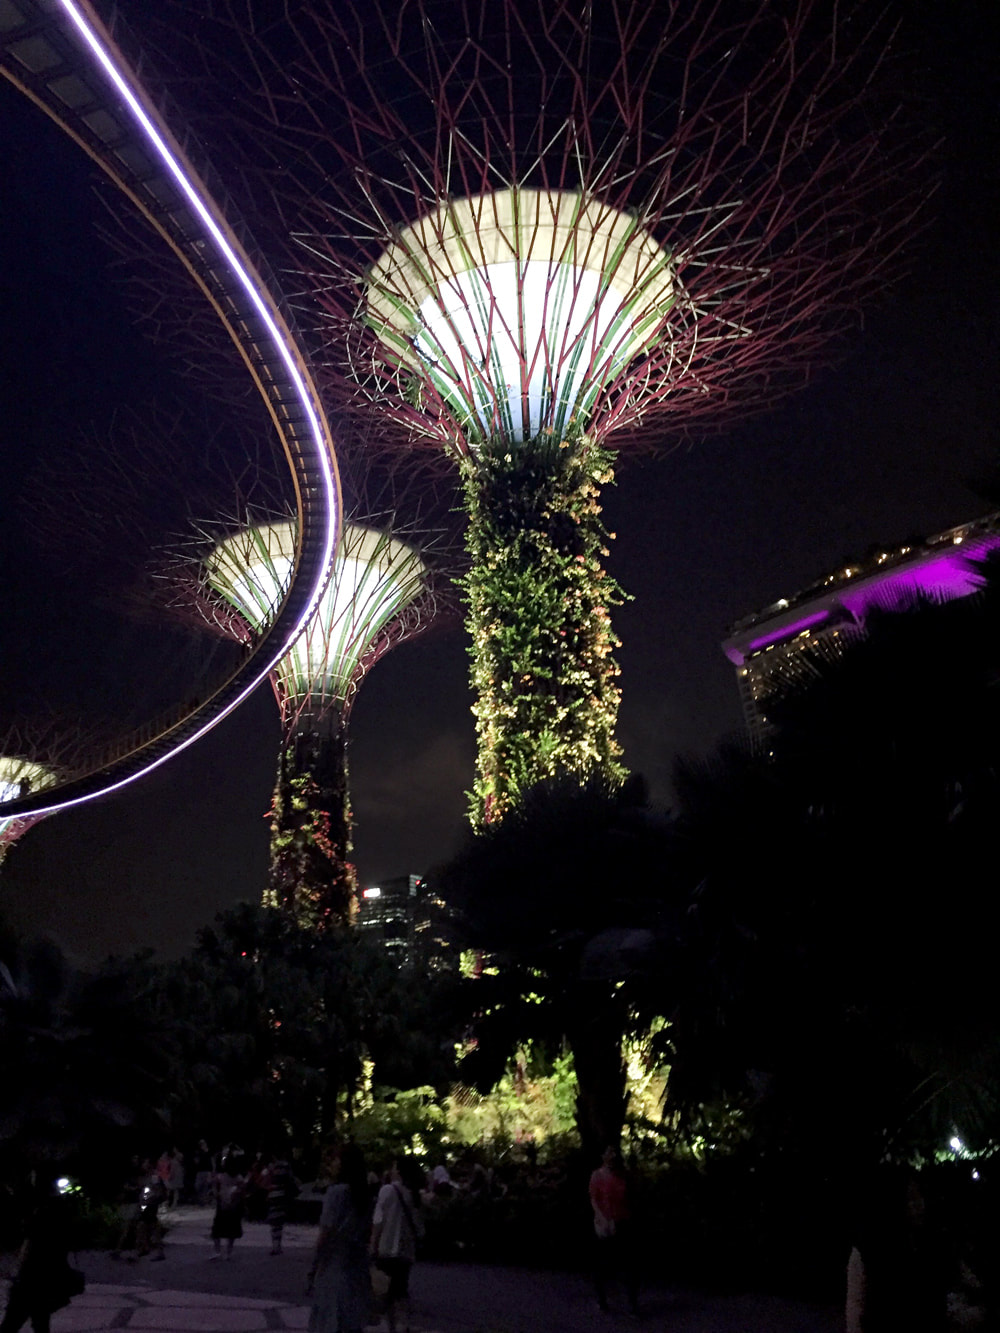 Supertree Grove and the OCBC Skyway at night - Gardens by the Bay, Singapore.